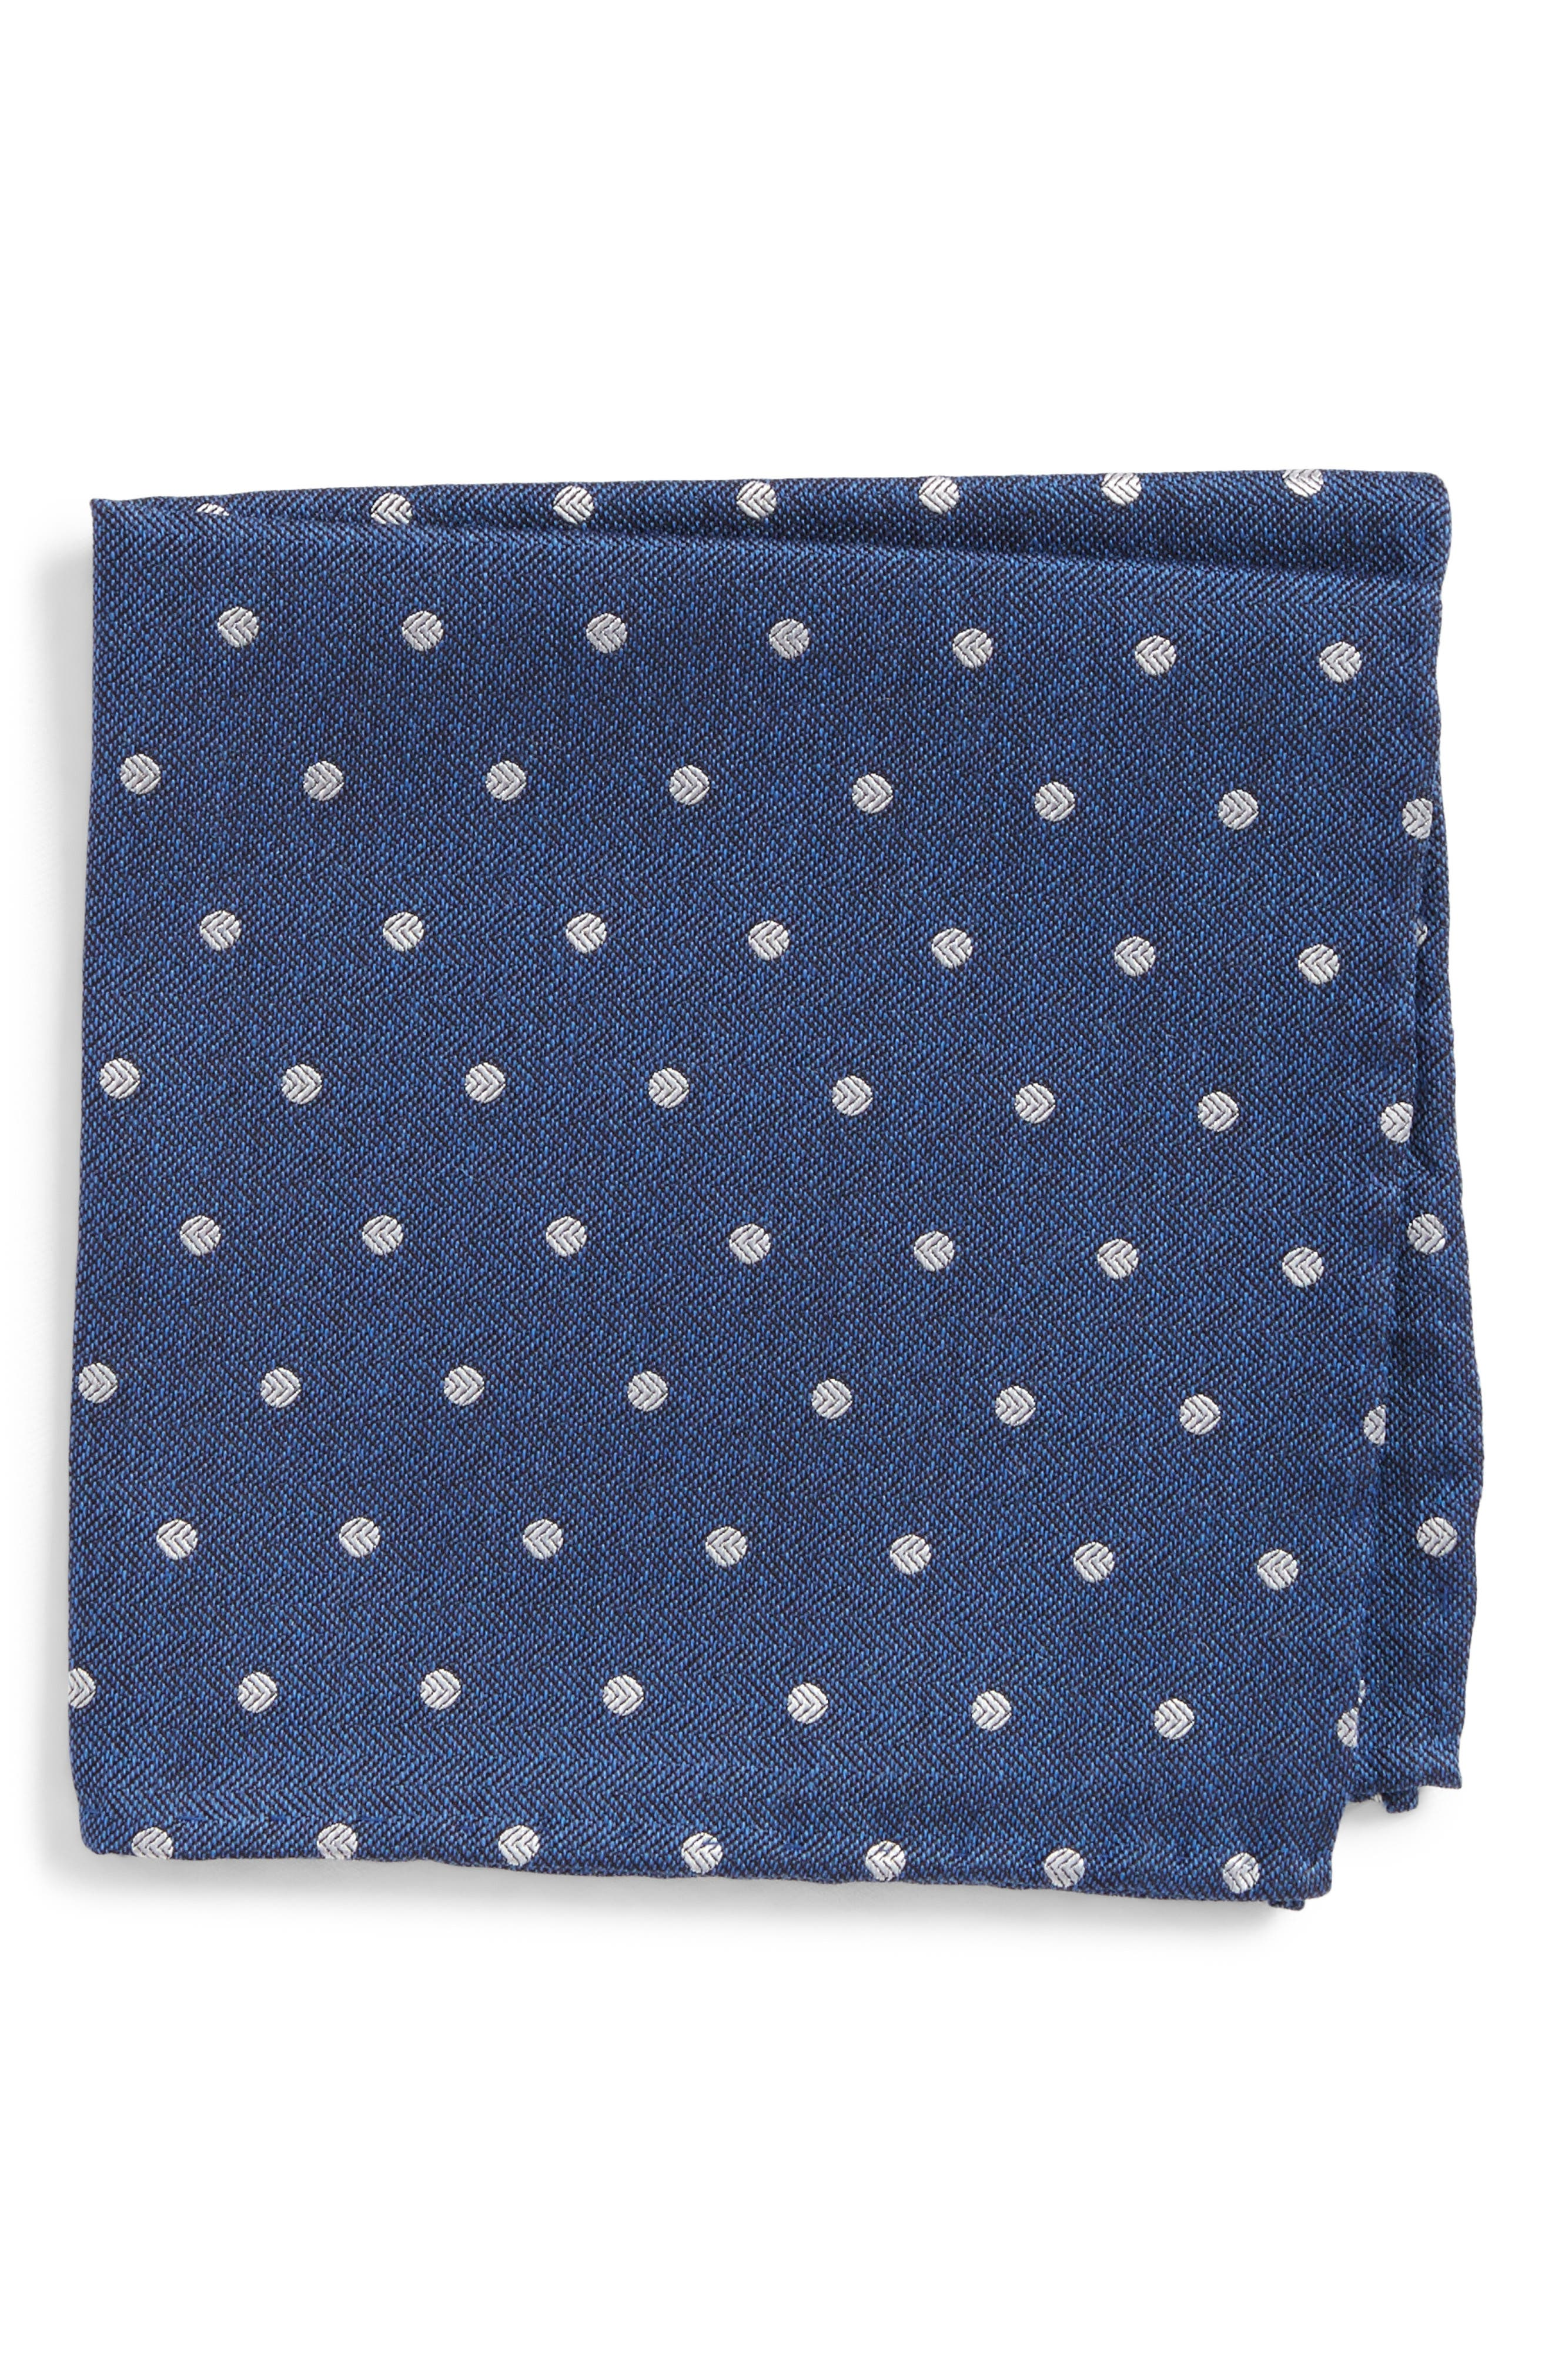 Alternate Image 1 Selected - The Tie Bar Dot Hitch Pocket Square